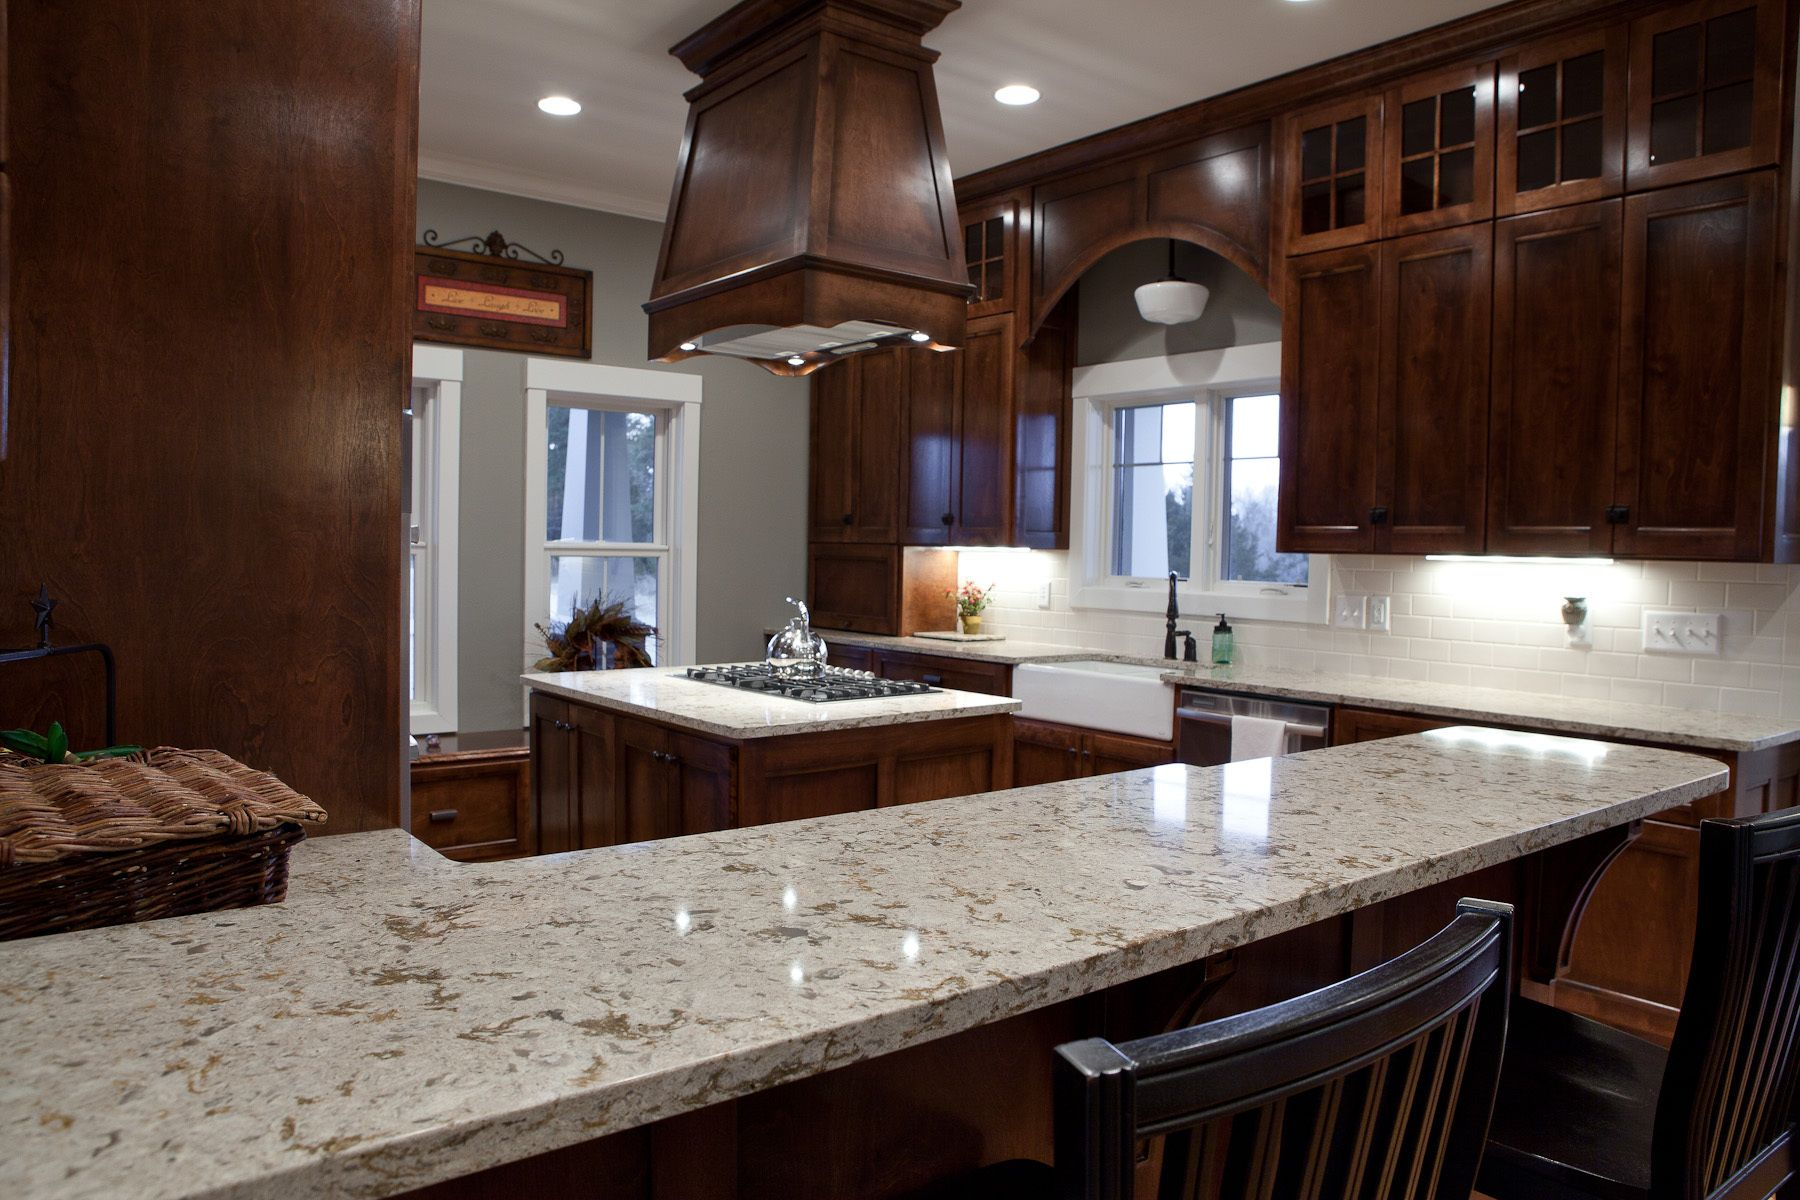 Kitchen White Kitchen Cabinets Quartz Countertops Wood